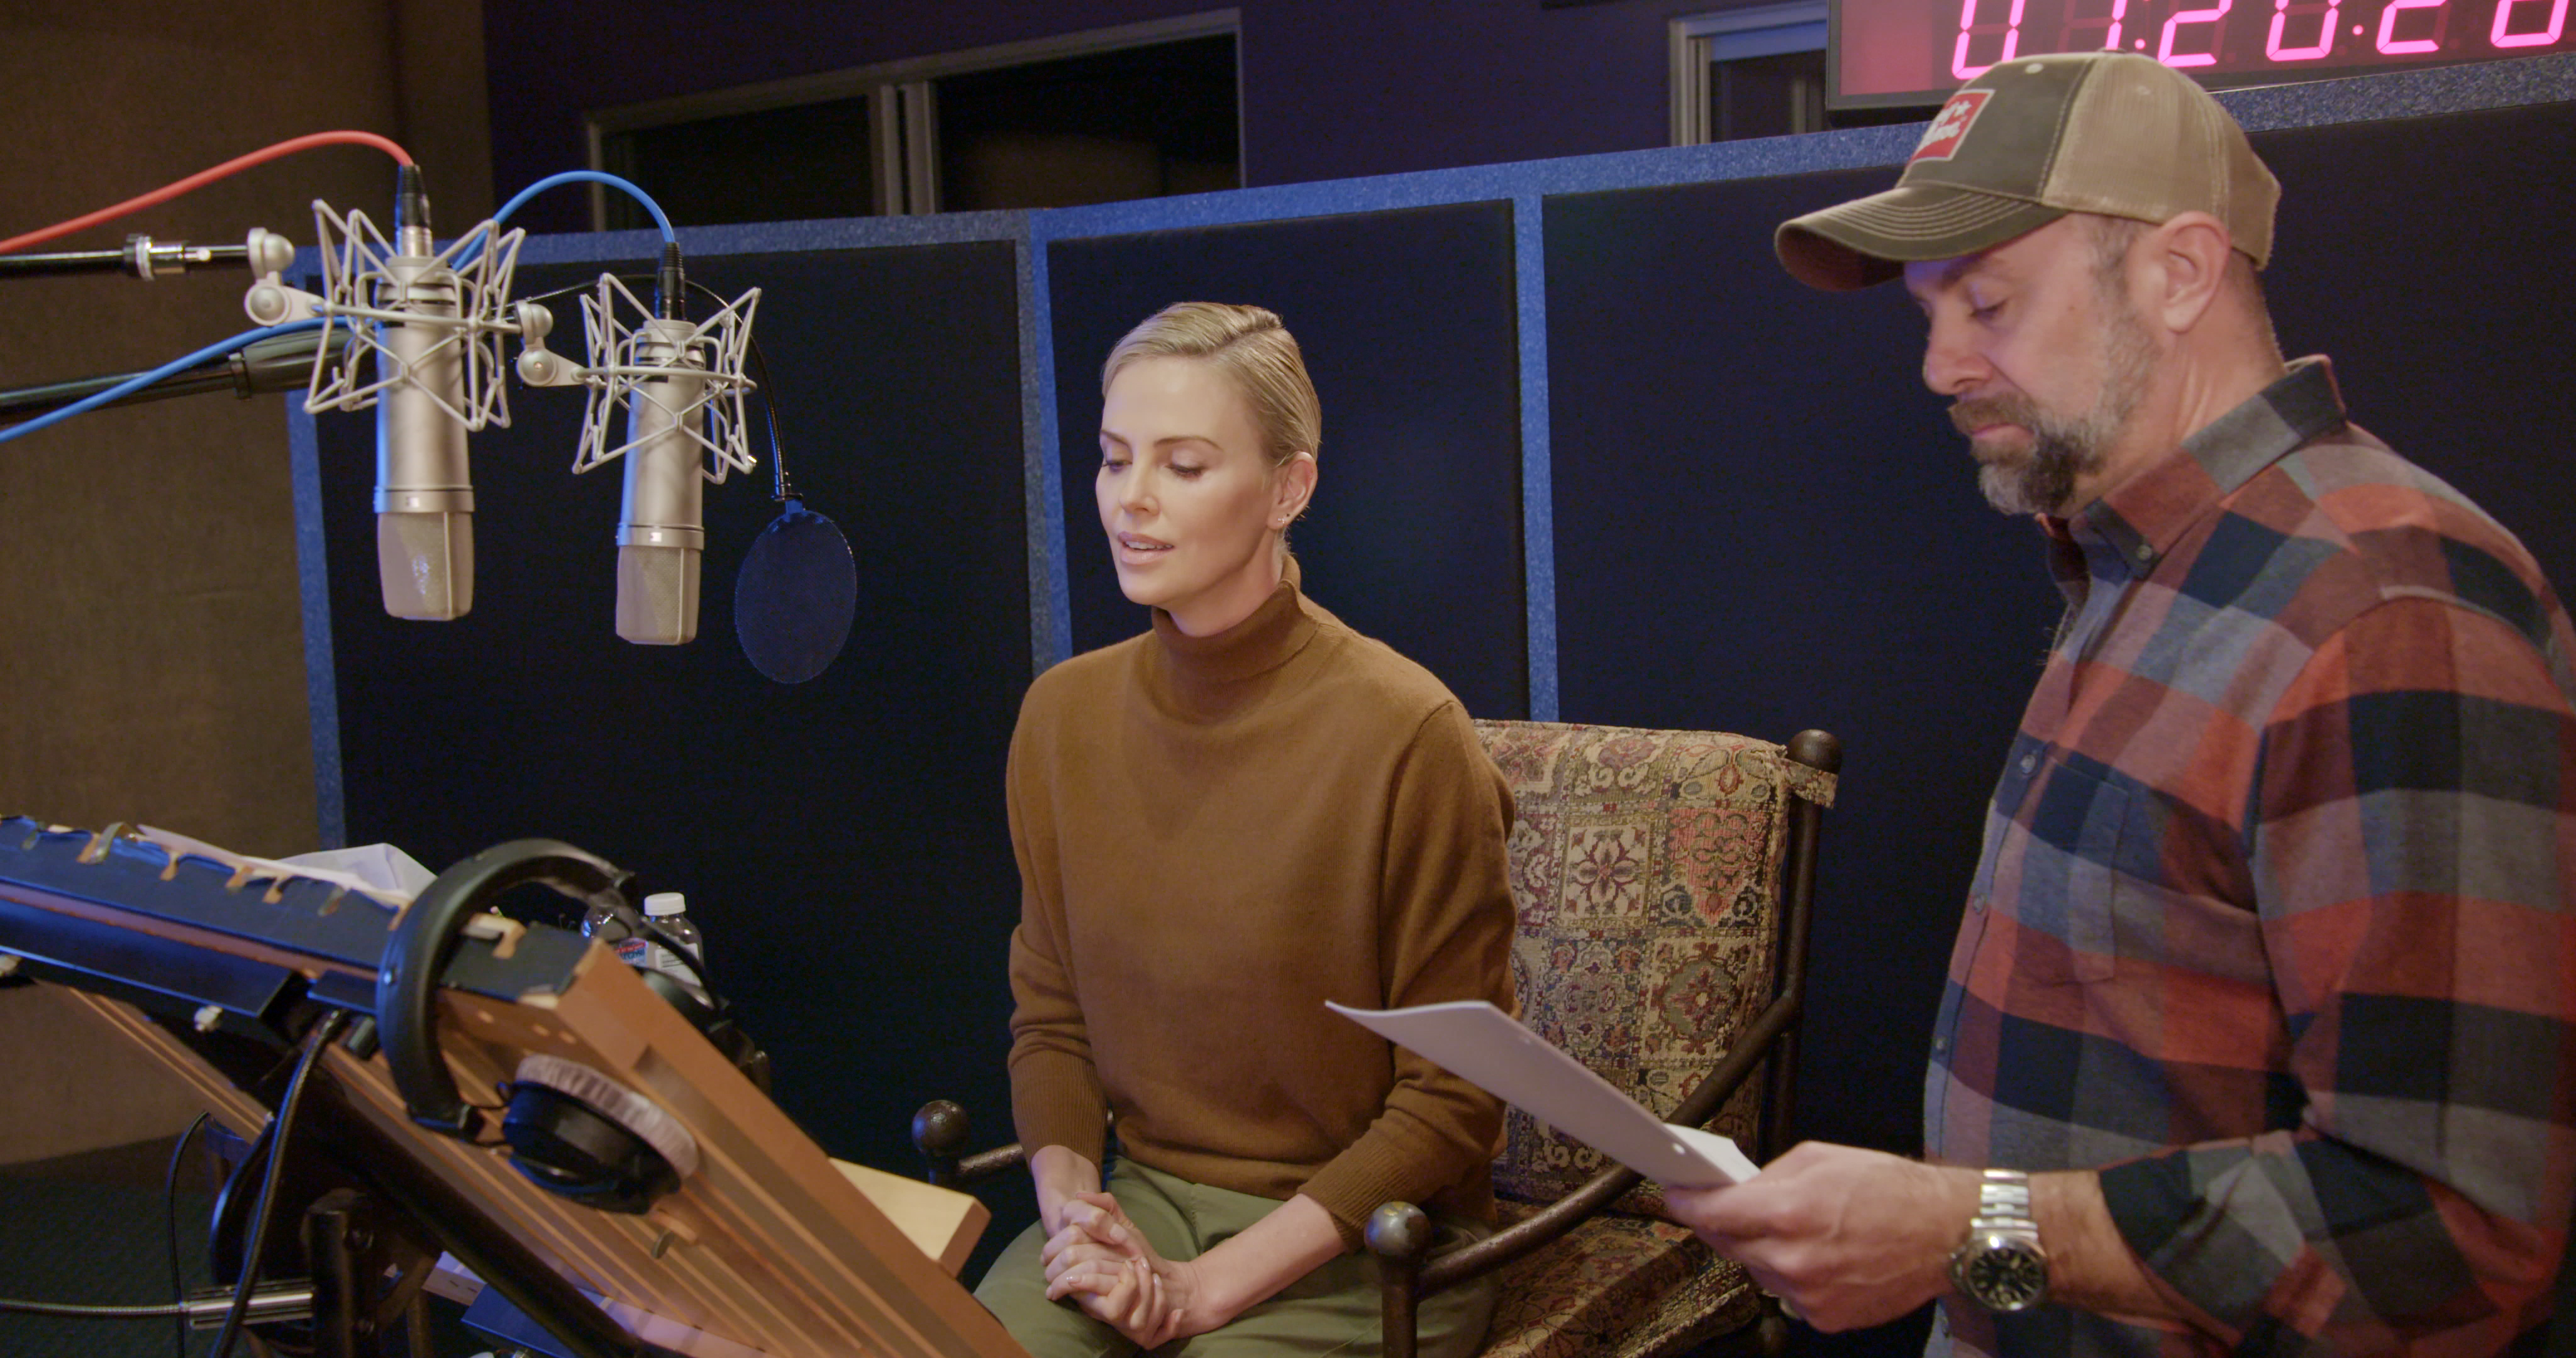 Charlize Theron (left) stars as the voice of Morticia Addams and director Conrad Vernon (right) during a recording session of THE ADDAMS FAMILY, directed by Conrad Vernon and Greg Tiernan, a Metro Goldwyn Mayer Pictures film. Credit: Metro Goldwyn Mayer Pictures © 2019 Metro-Goldwyn-Mayer Pictures Inc. All Rights Reserved.